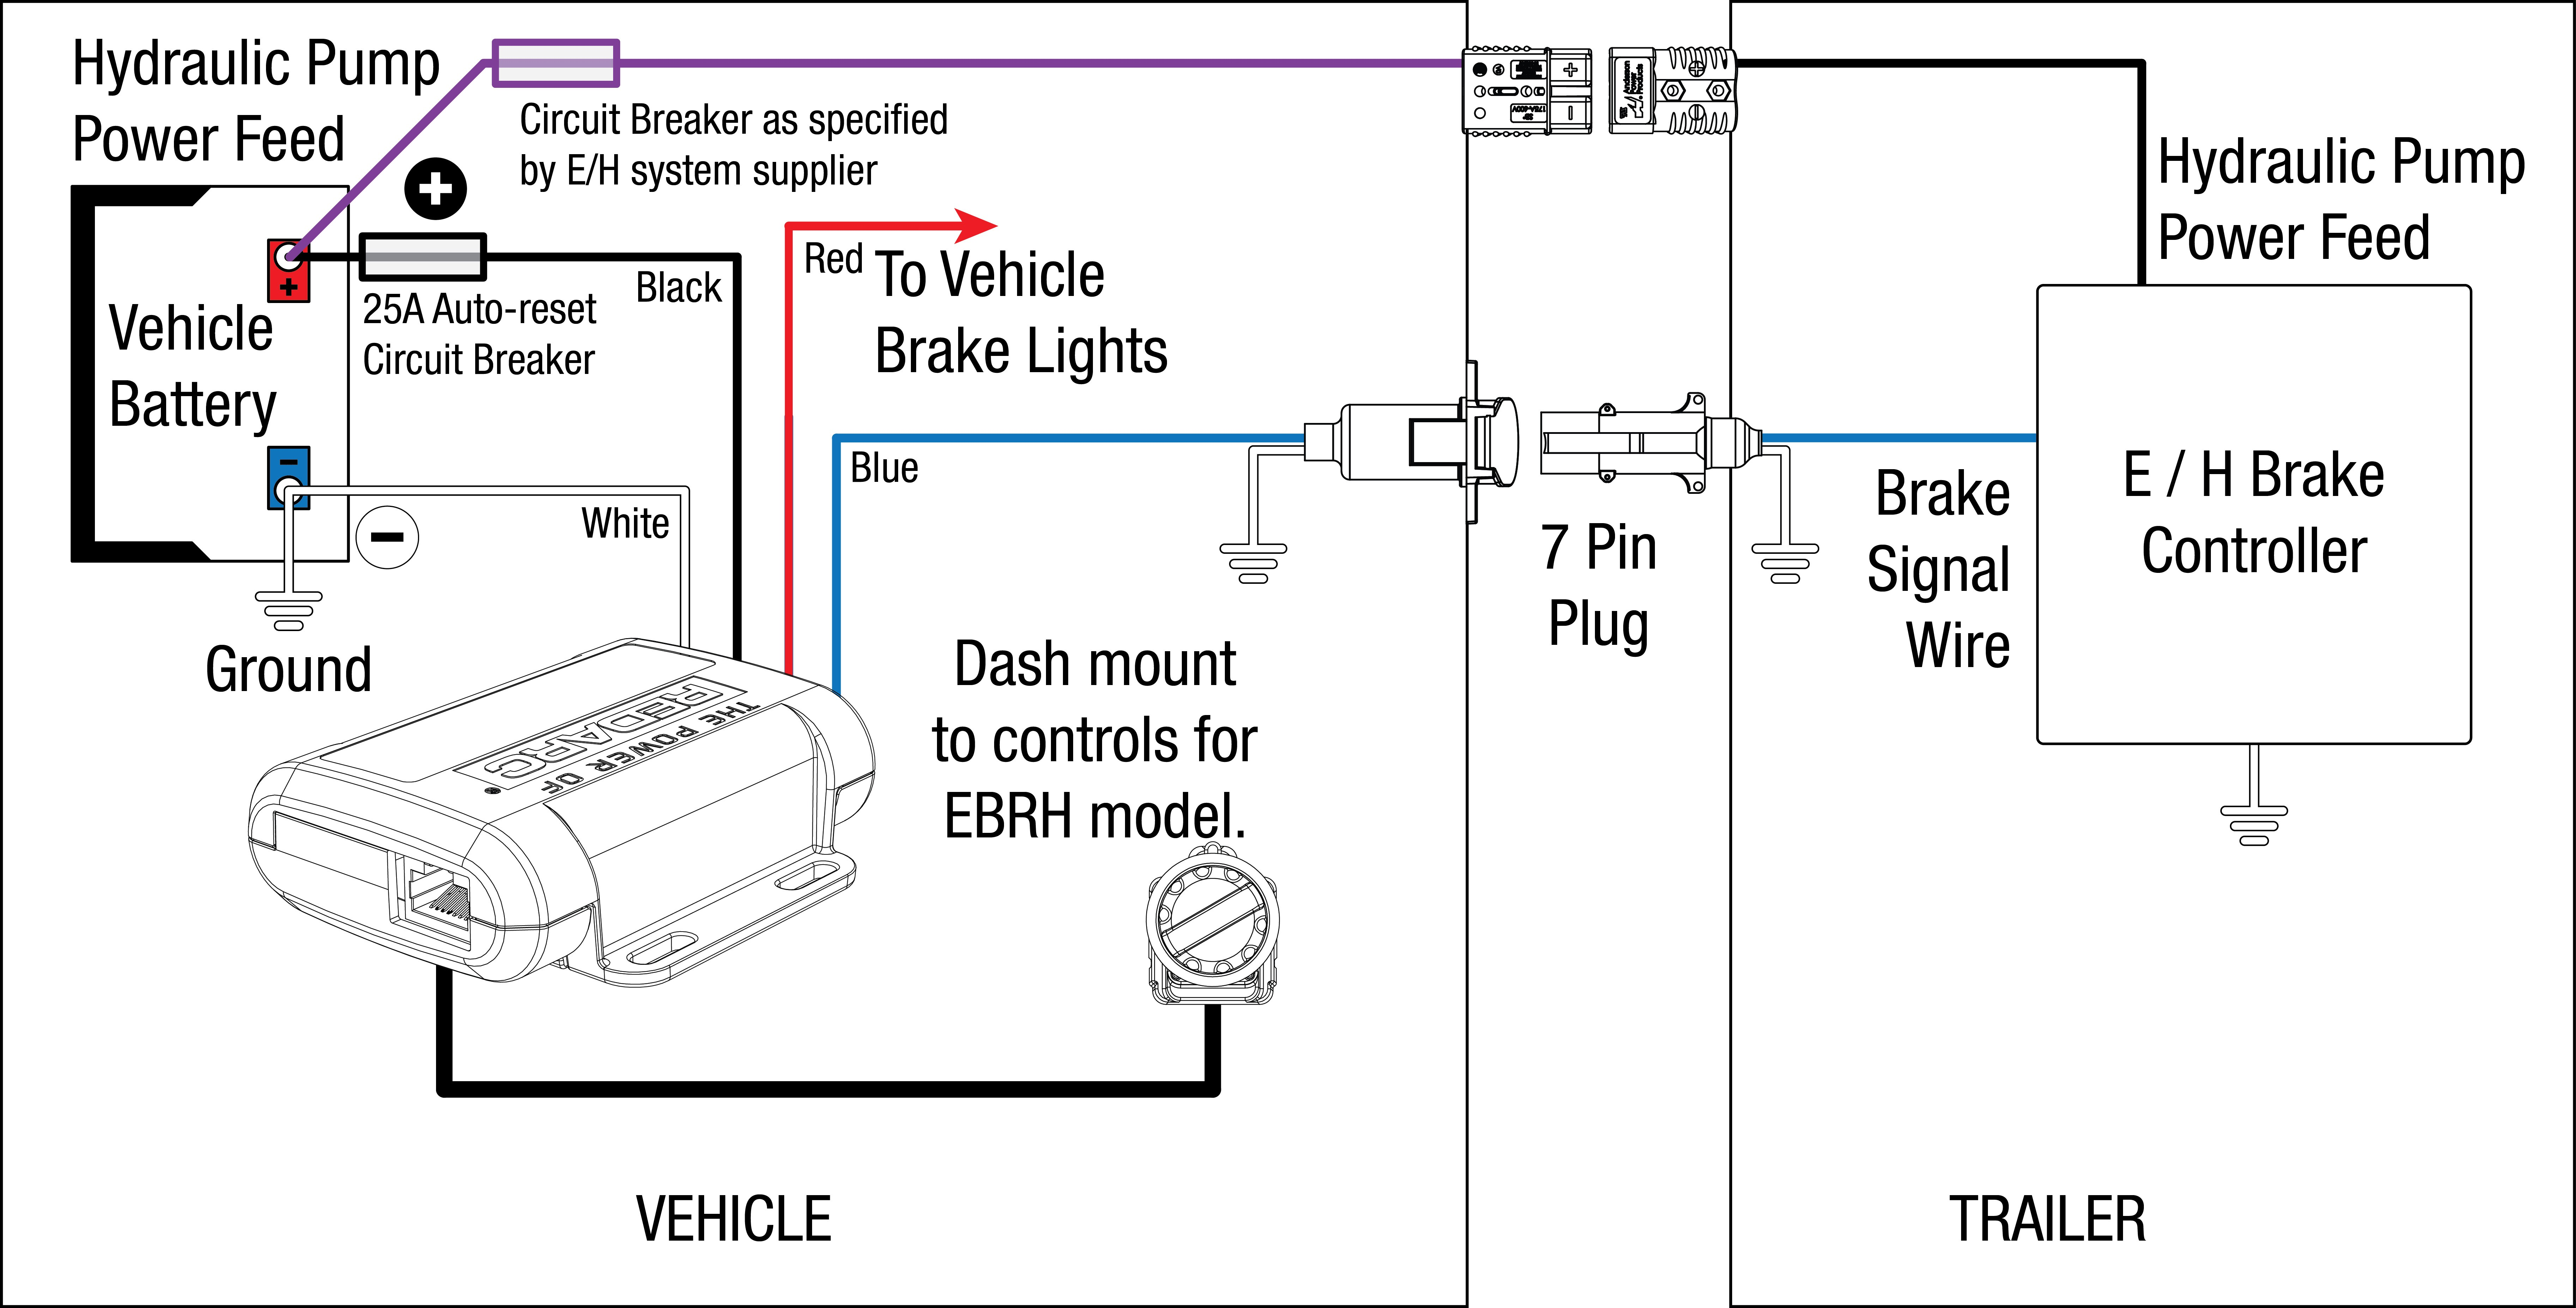 Primus Brake Controller Wiring Diagram Electric Trailer Brake Controller Wiring Diagram and Inst 03 at Of Primus Brake Controller Wiring Diagram